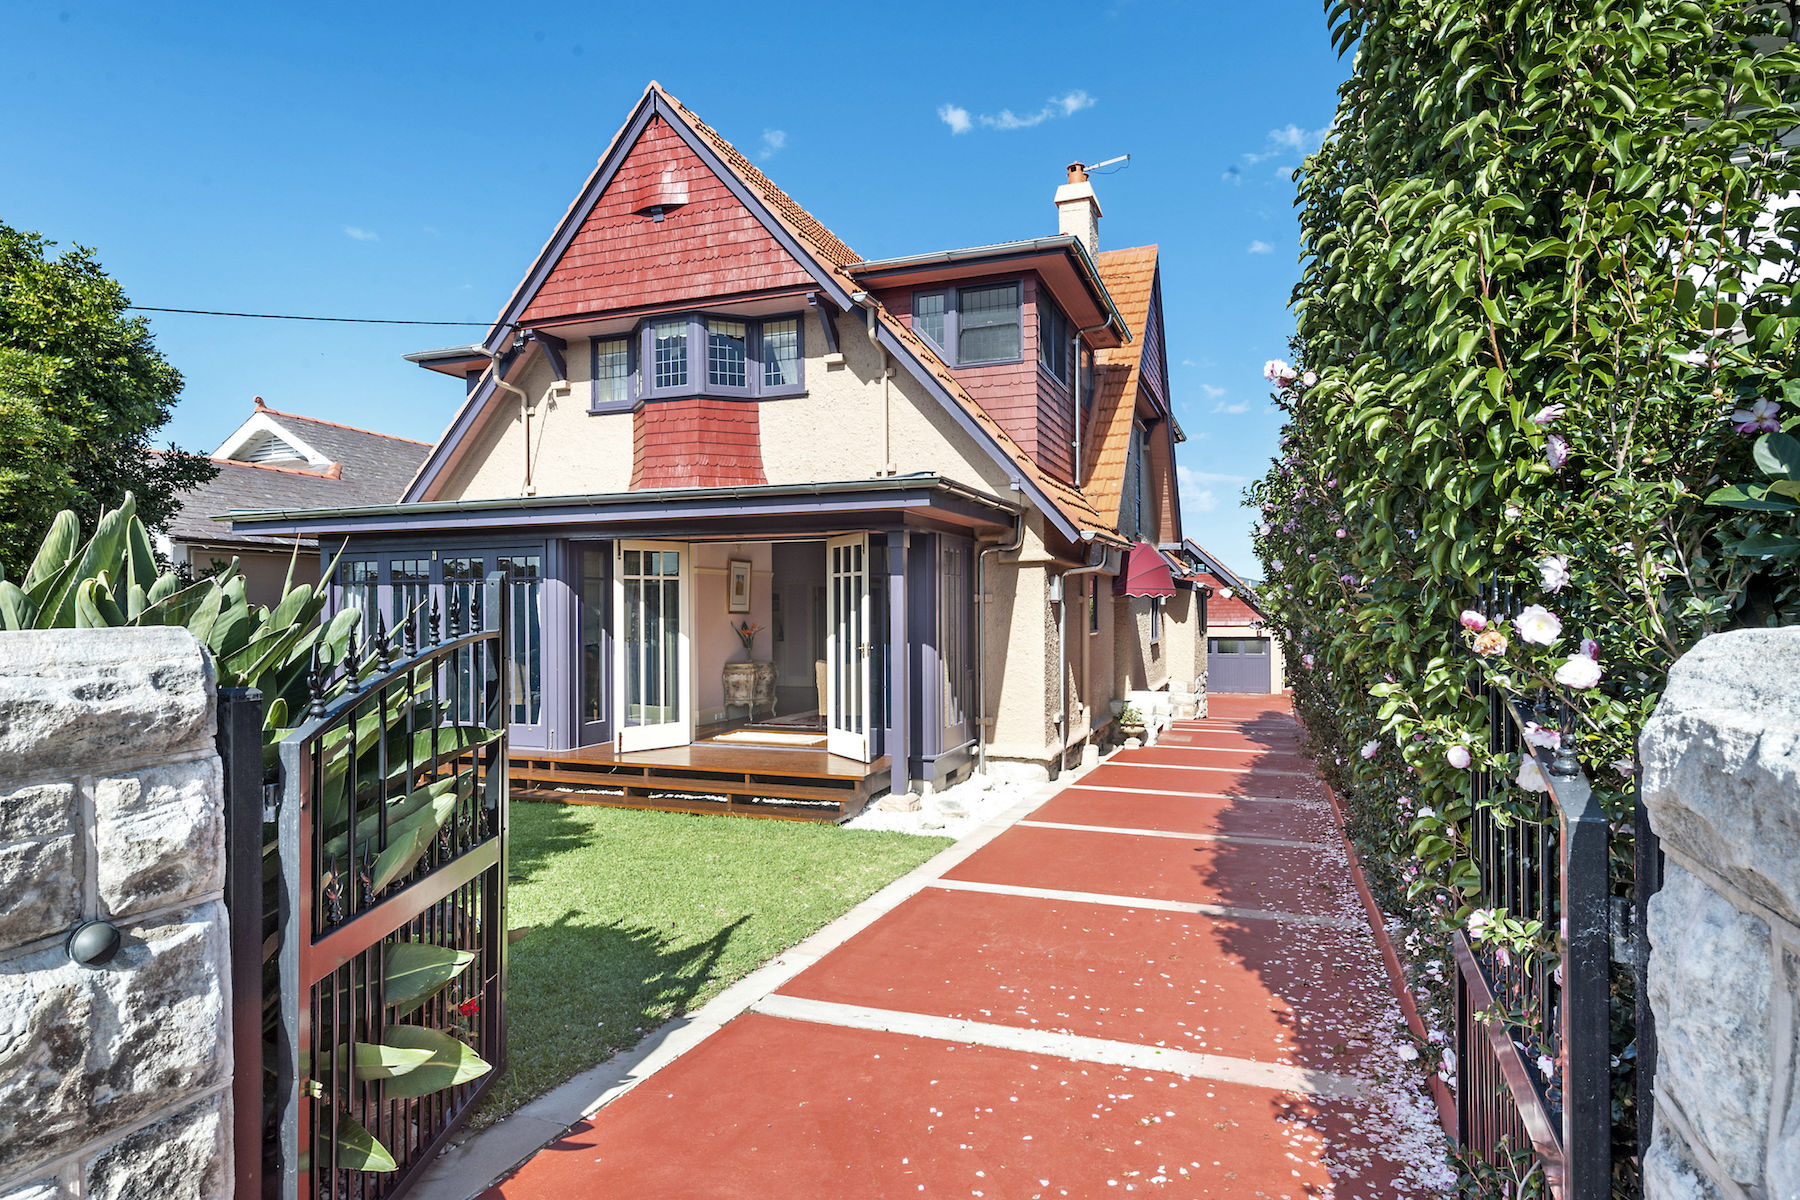 Other Residential for Sale at 20 David Street, Mosman Sydney, New South Wales, 2088 Australia